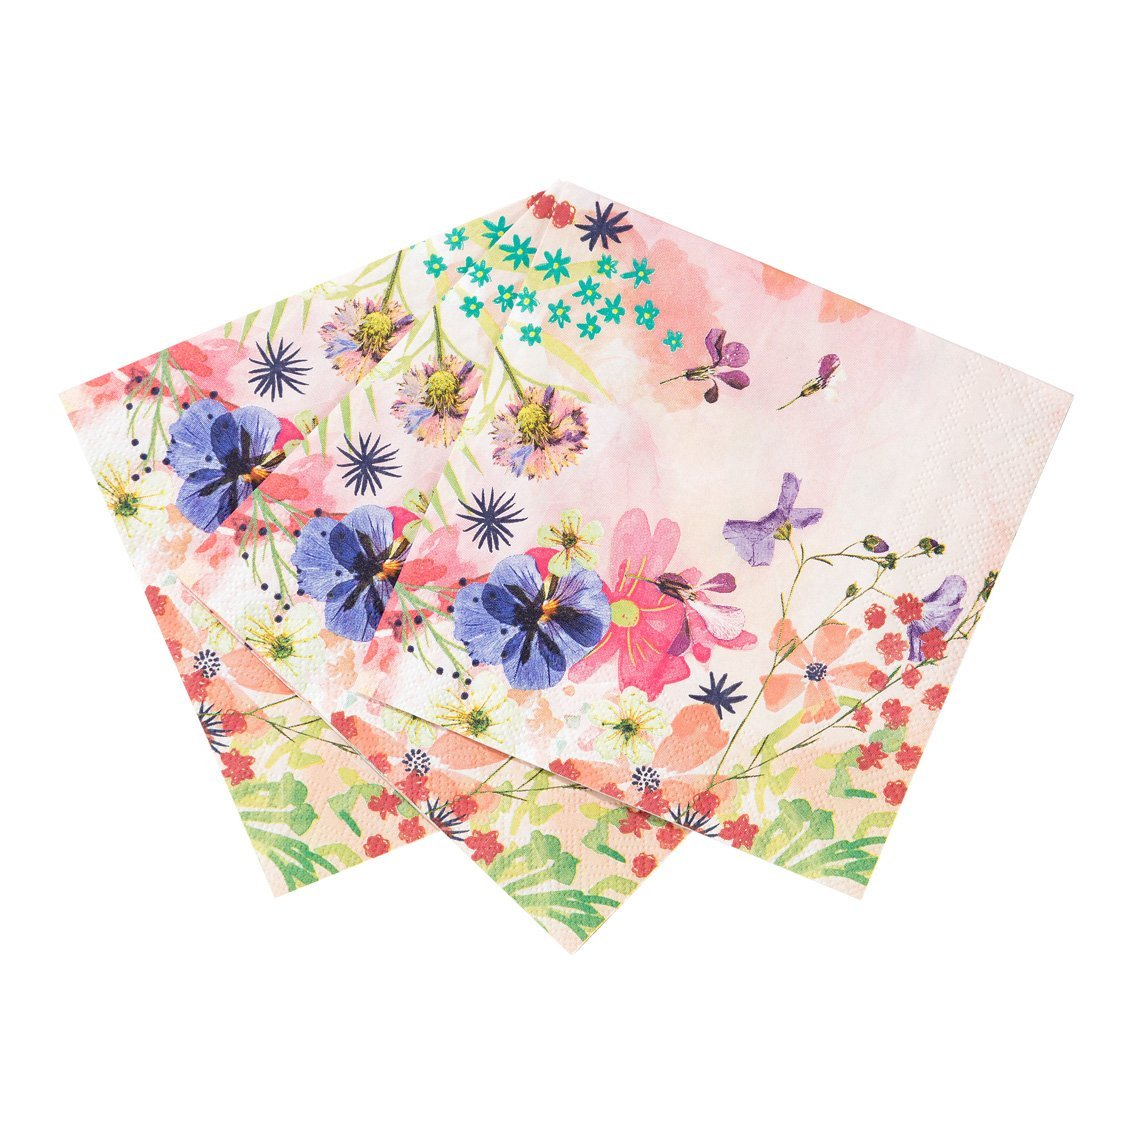 Blossom Girls Cocktail Napkins (12pcs) (Add to Your Tea Set)